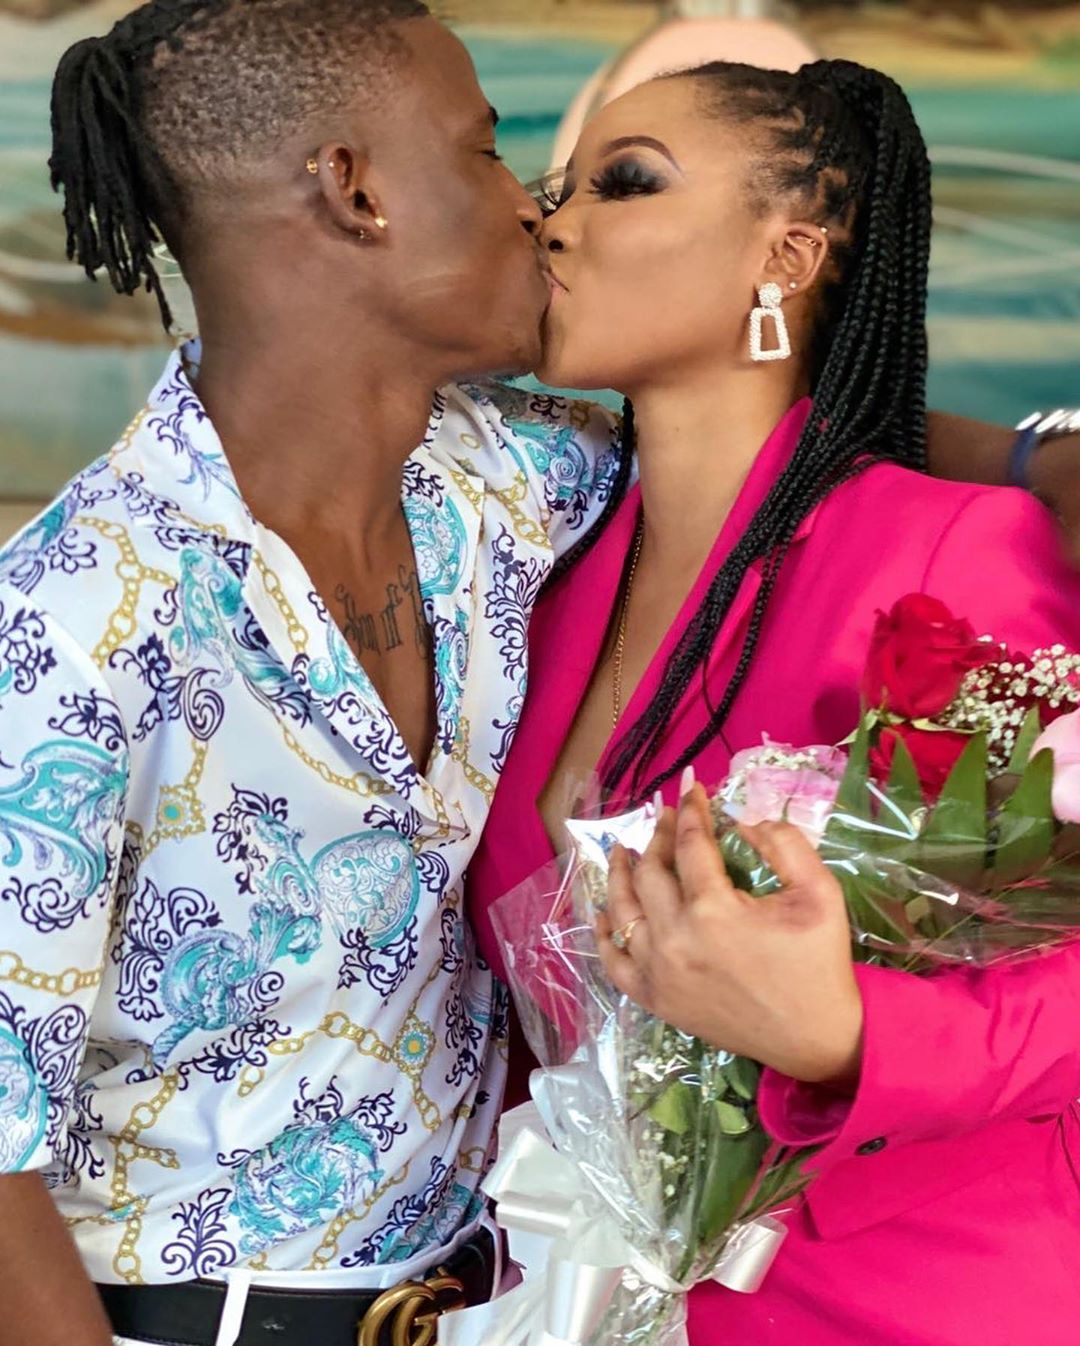 Nollywood actor proposes to his beautiful girlfriend in a restaurant (Photos) 9